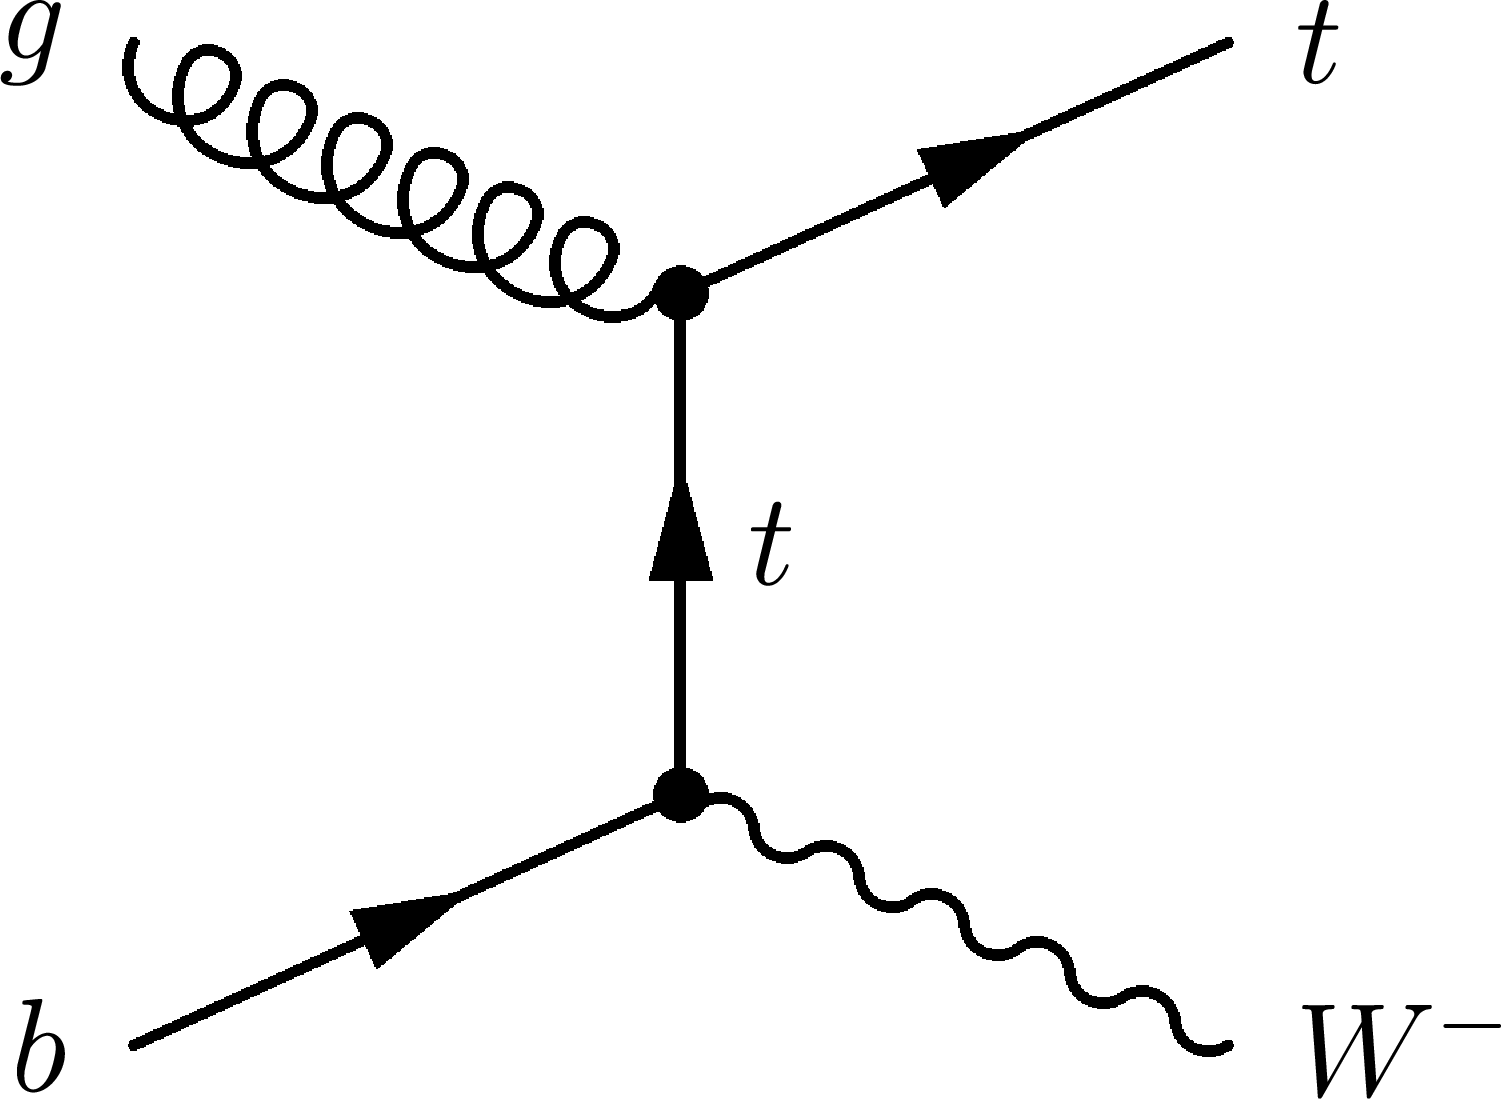 Feynman diagram of leading order tW production